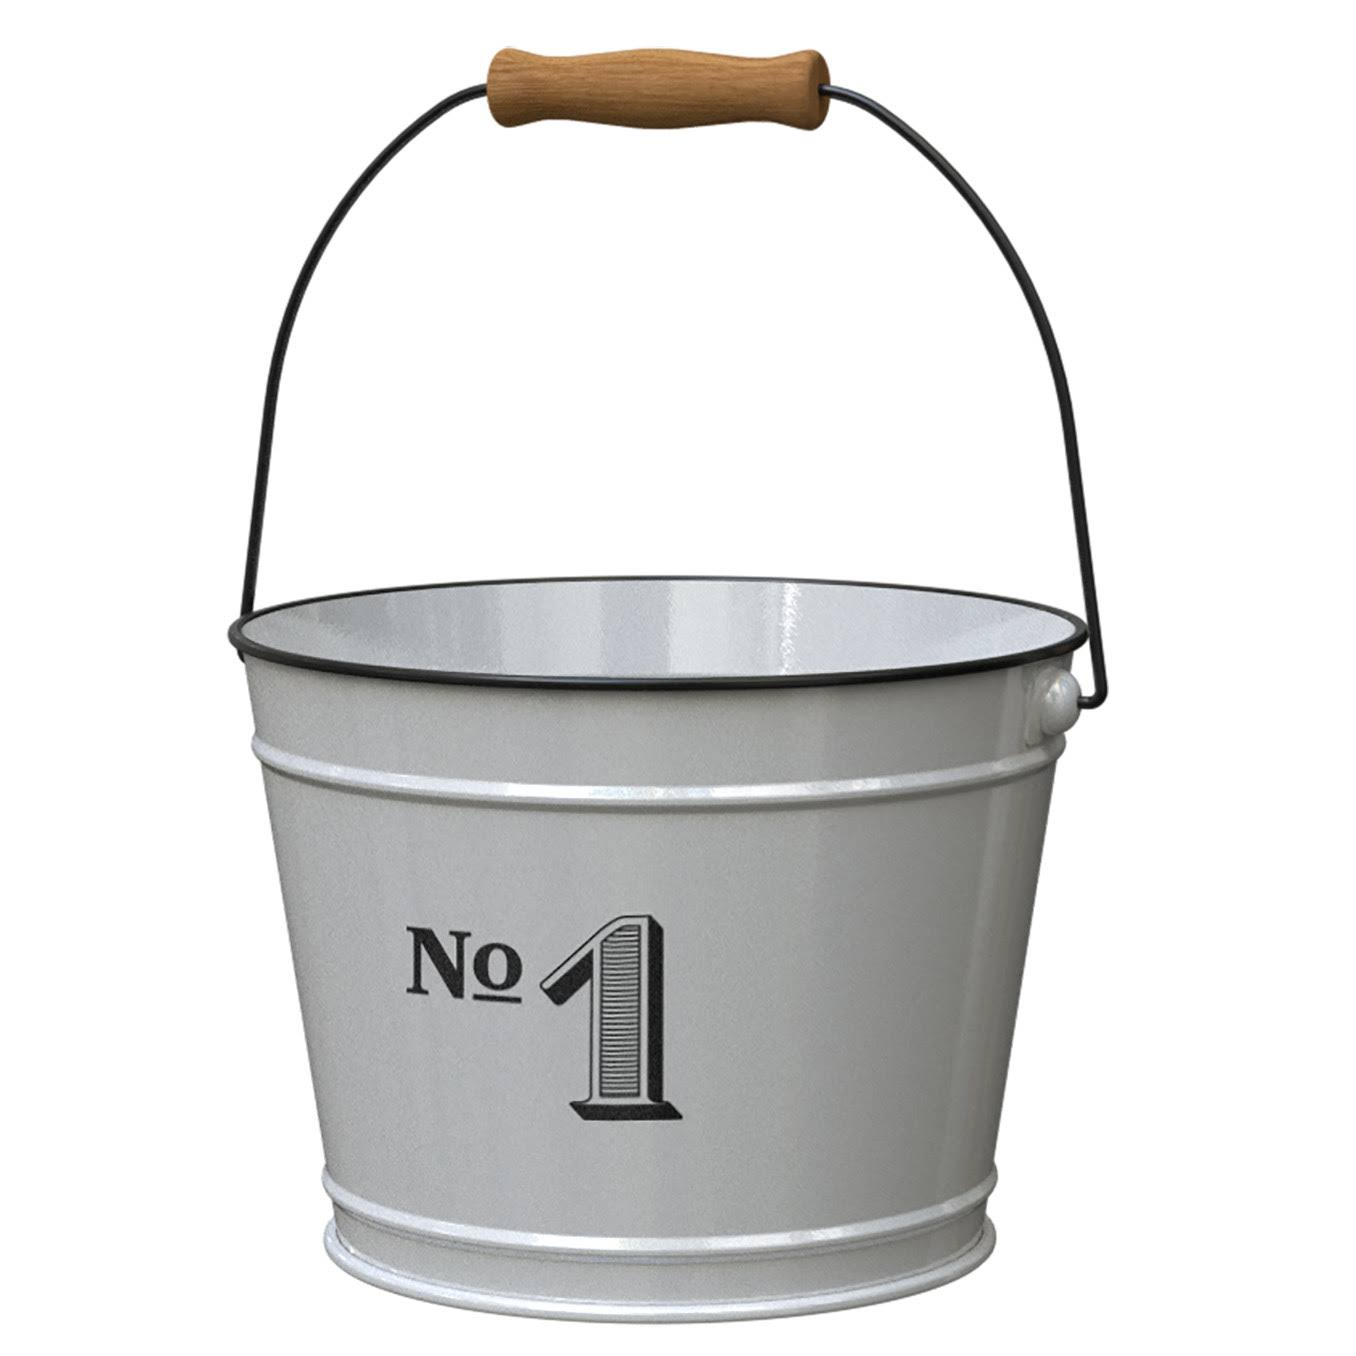 Panacea Vintage Milkhouse Planter Bucket - #1, Large